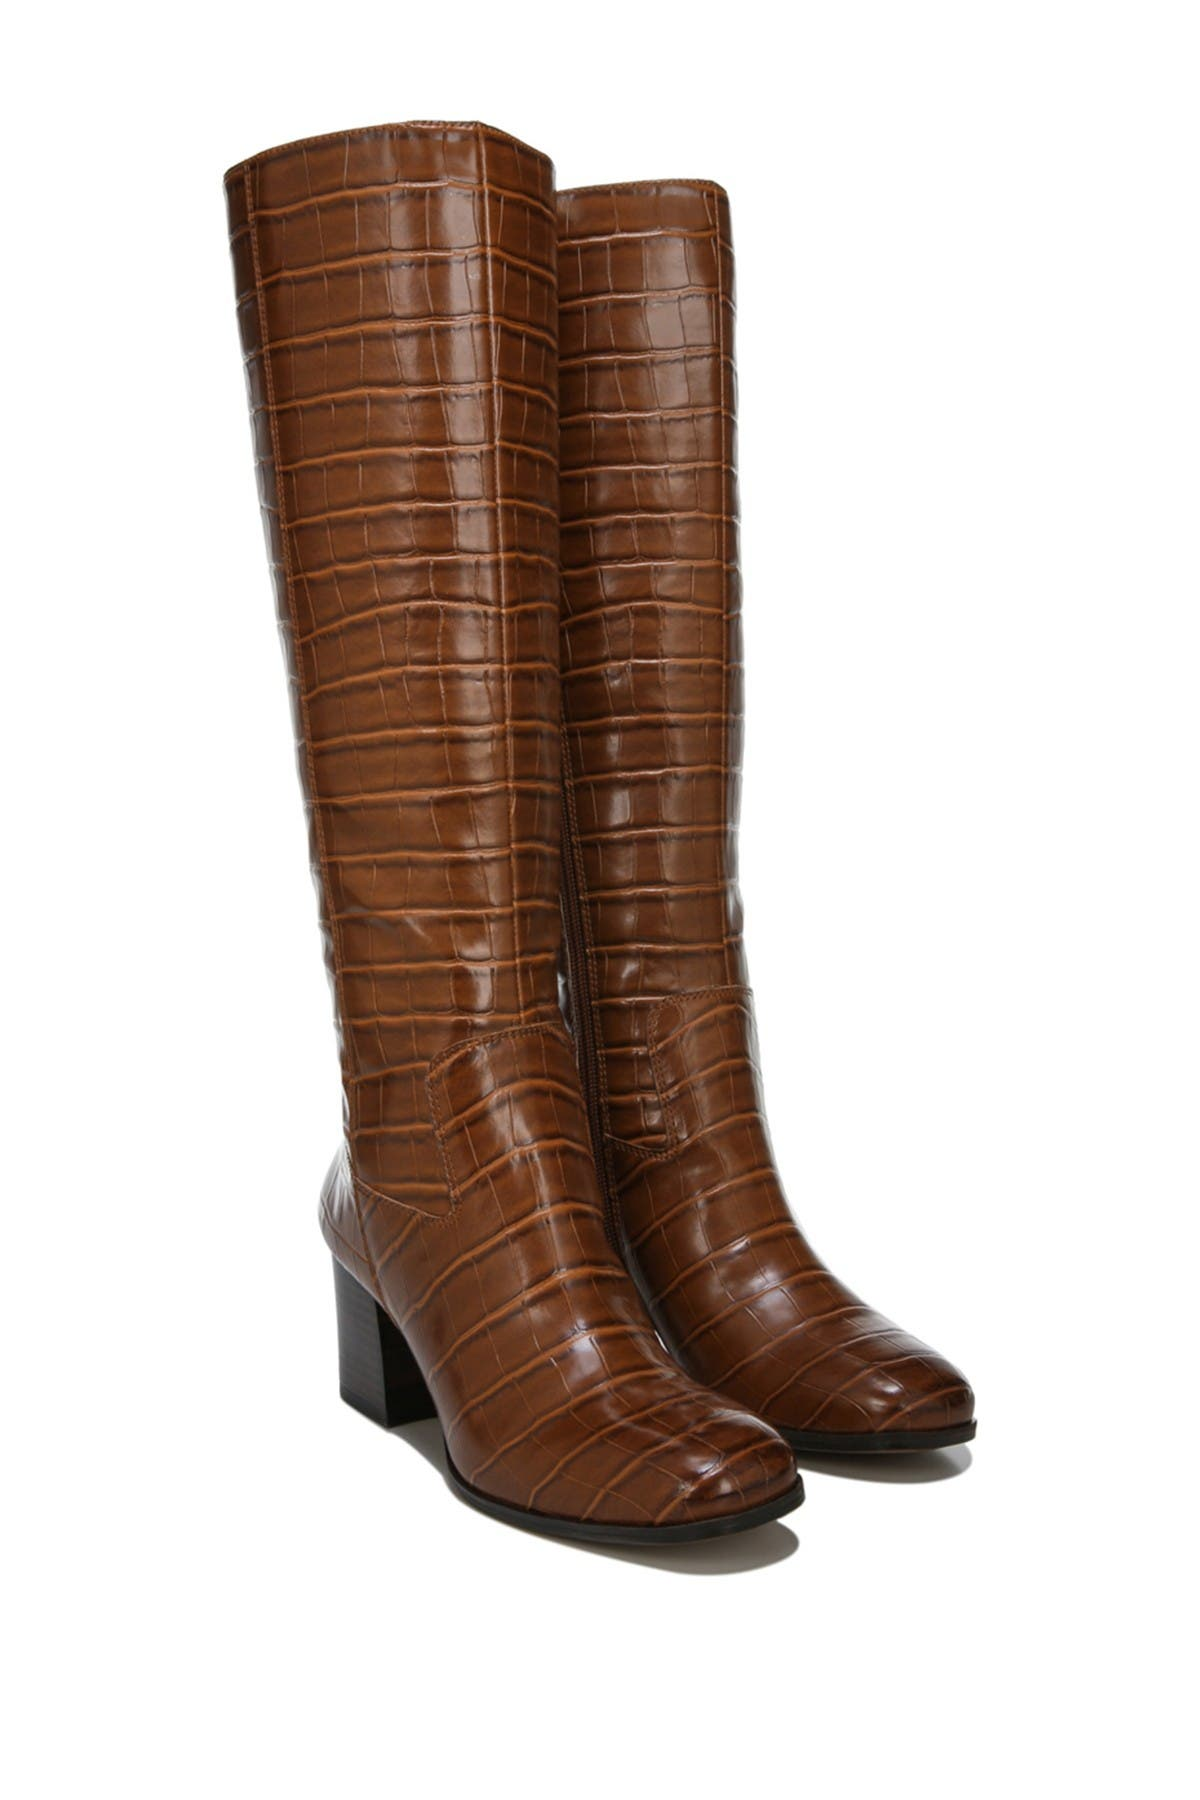 Image of Franco Sarto Anberlin Croc Embossed Boot